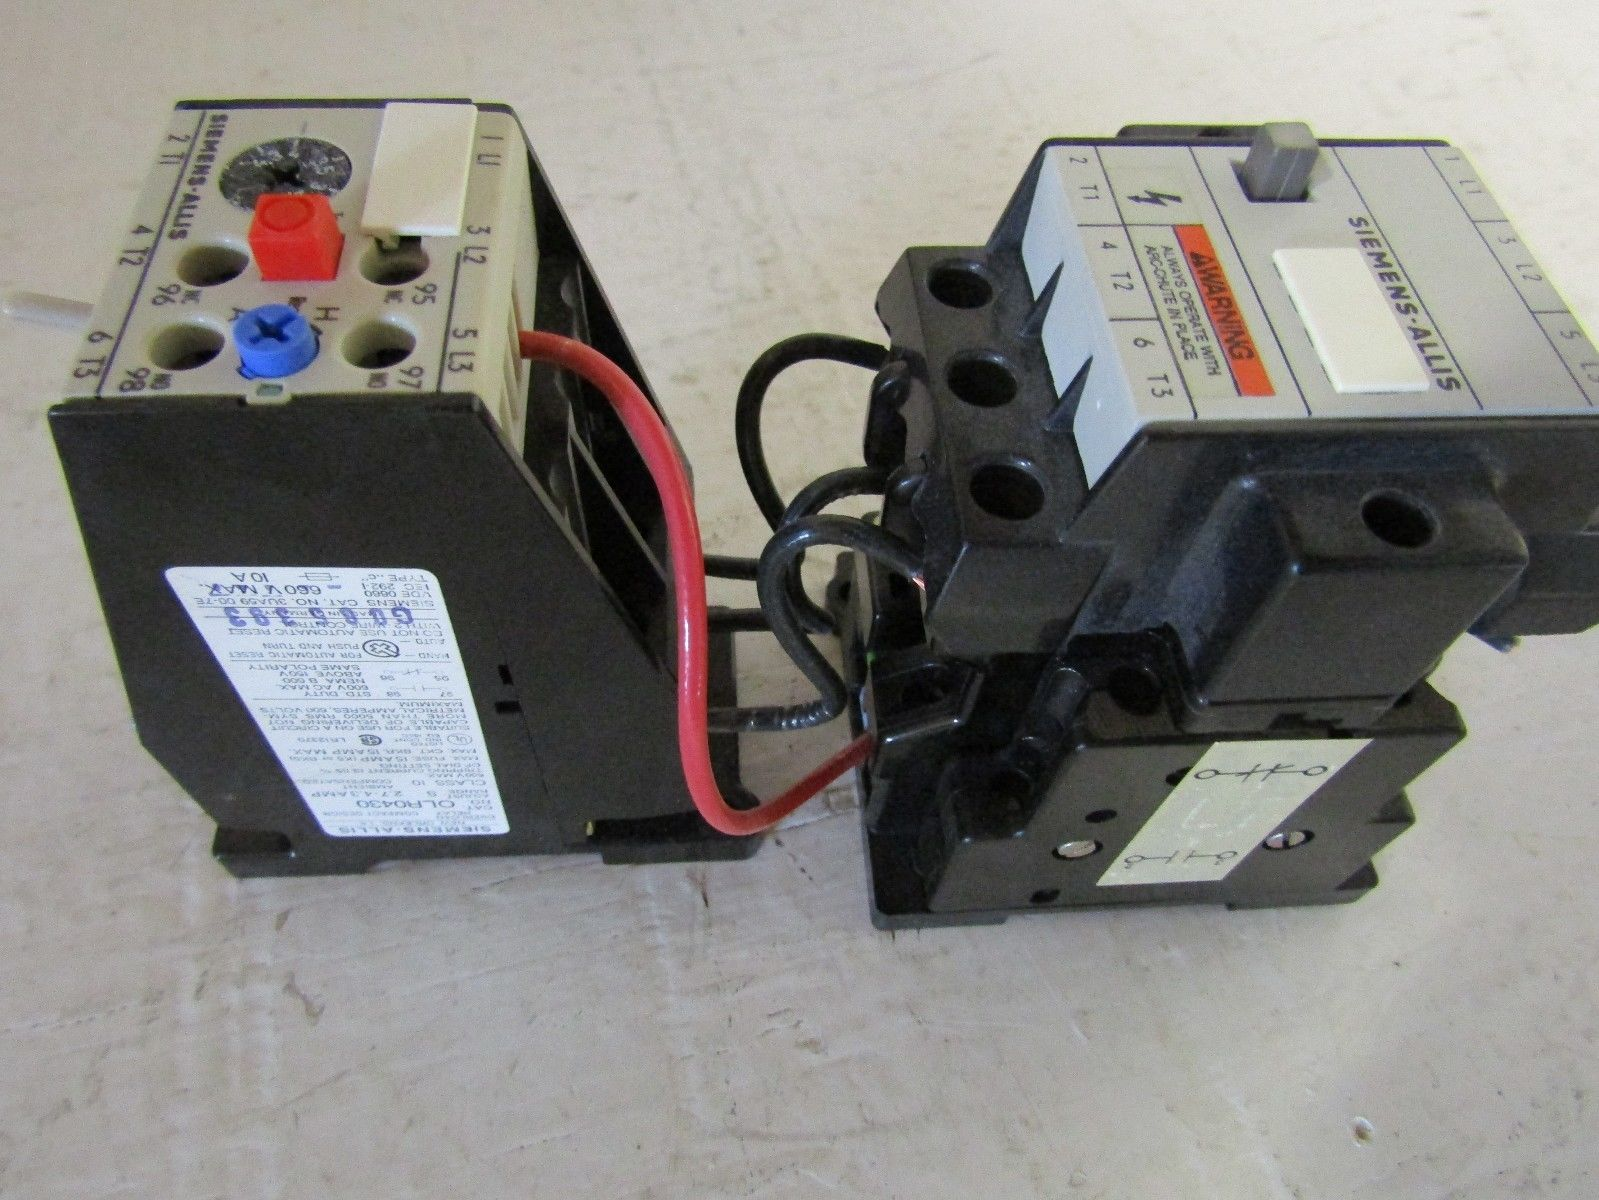 lighting contactor, electrical contactor, 3 phase contactor, on understanding a size 00 contactor wiring